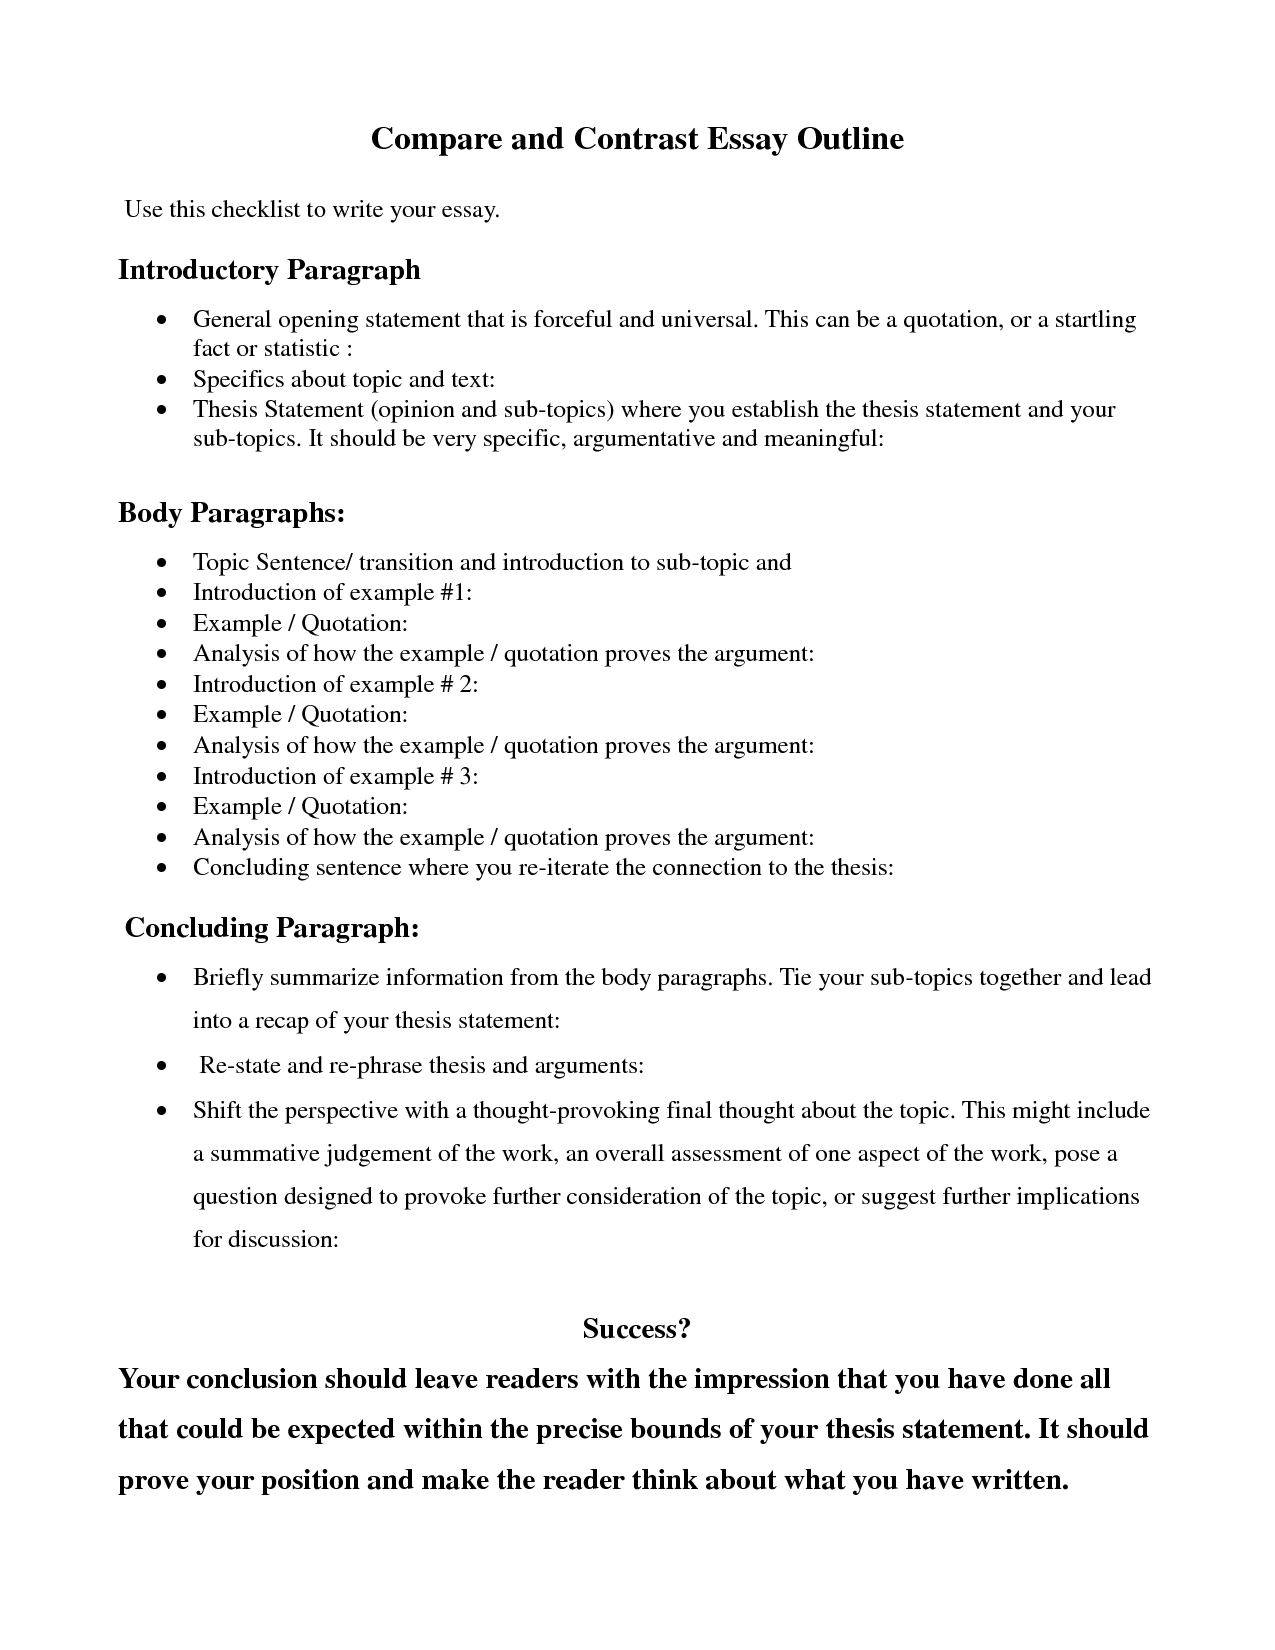 001 Compare And Contrast Essay Outline Example Magnificent Apa Format Examples Full